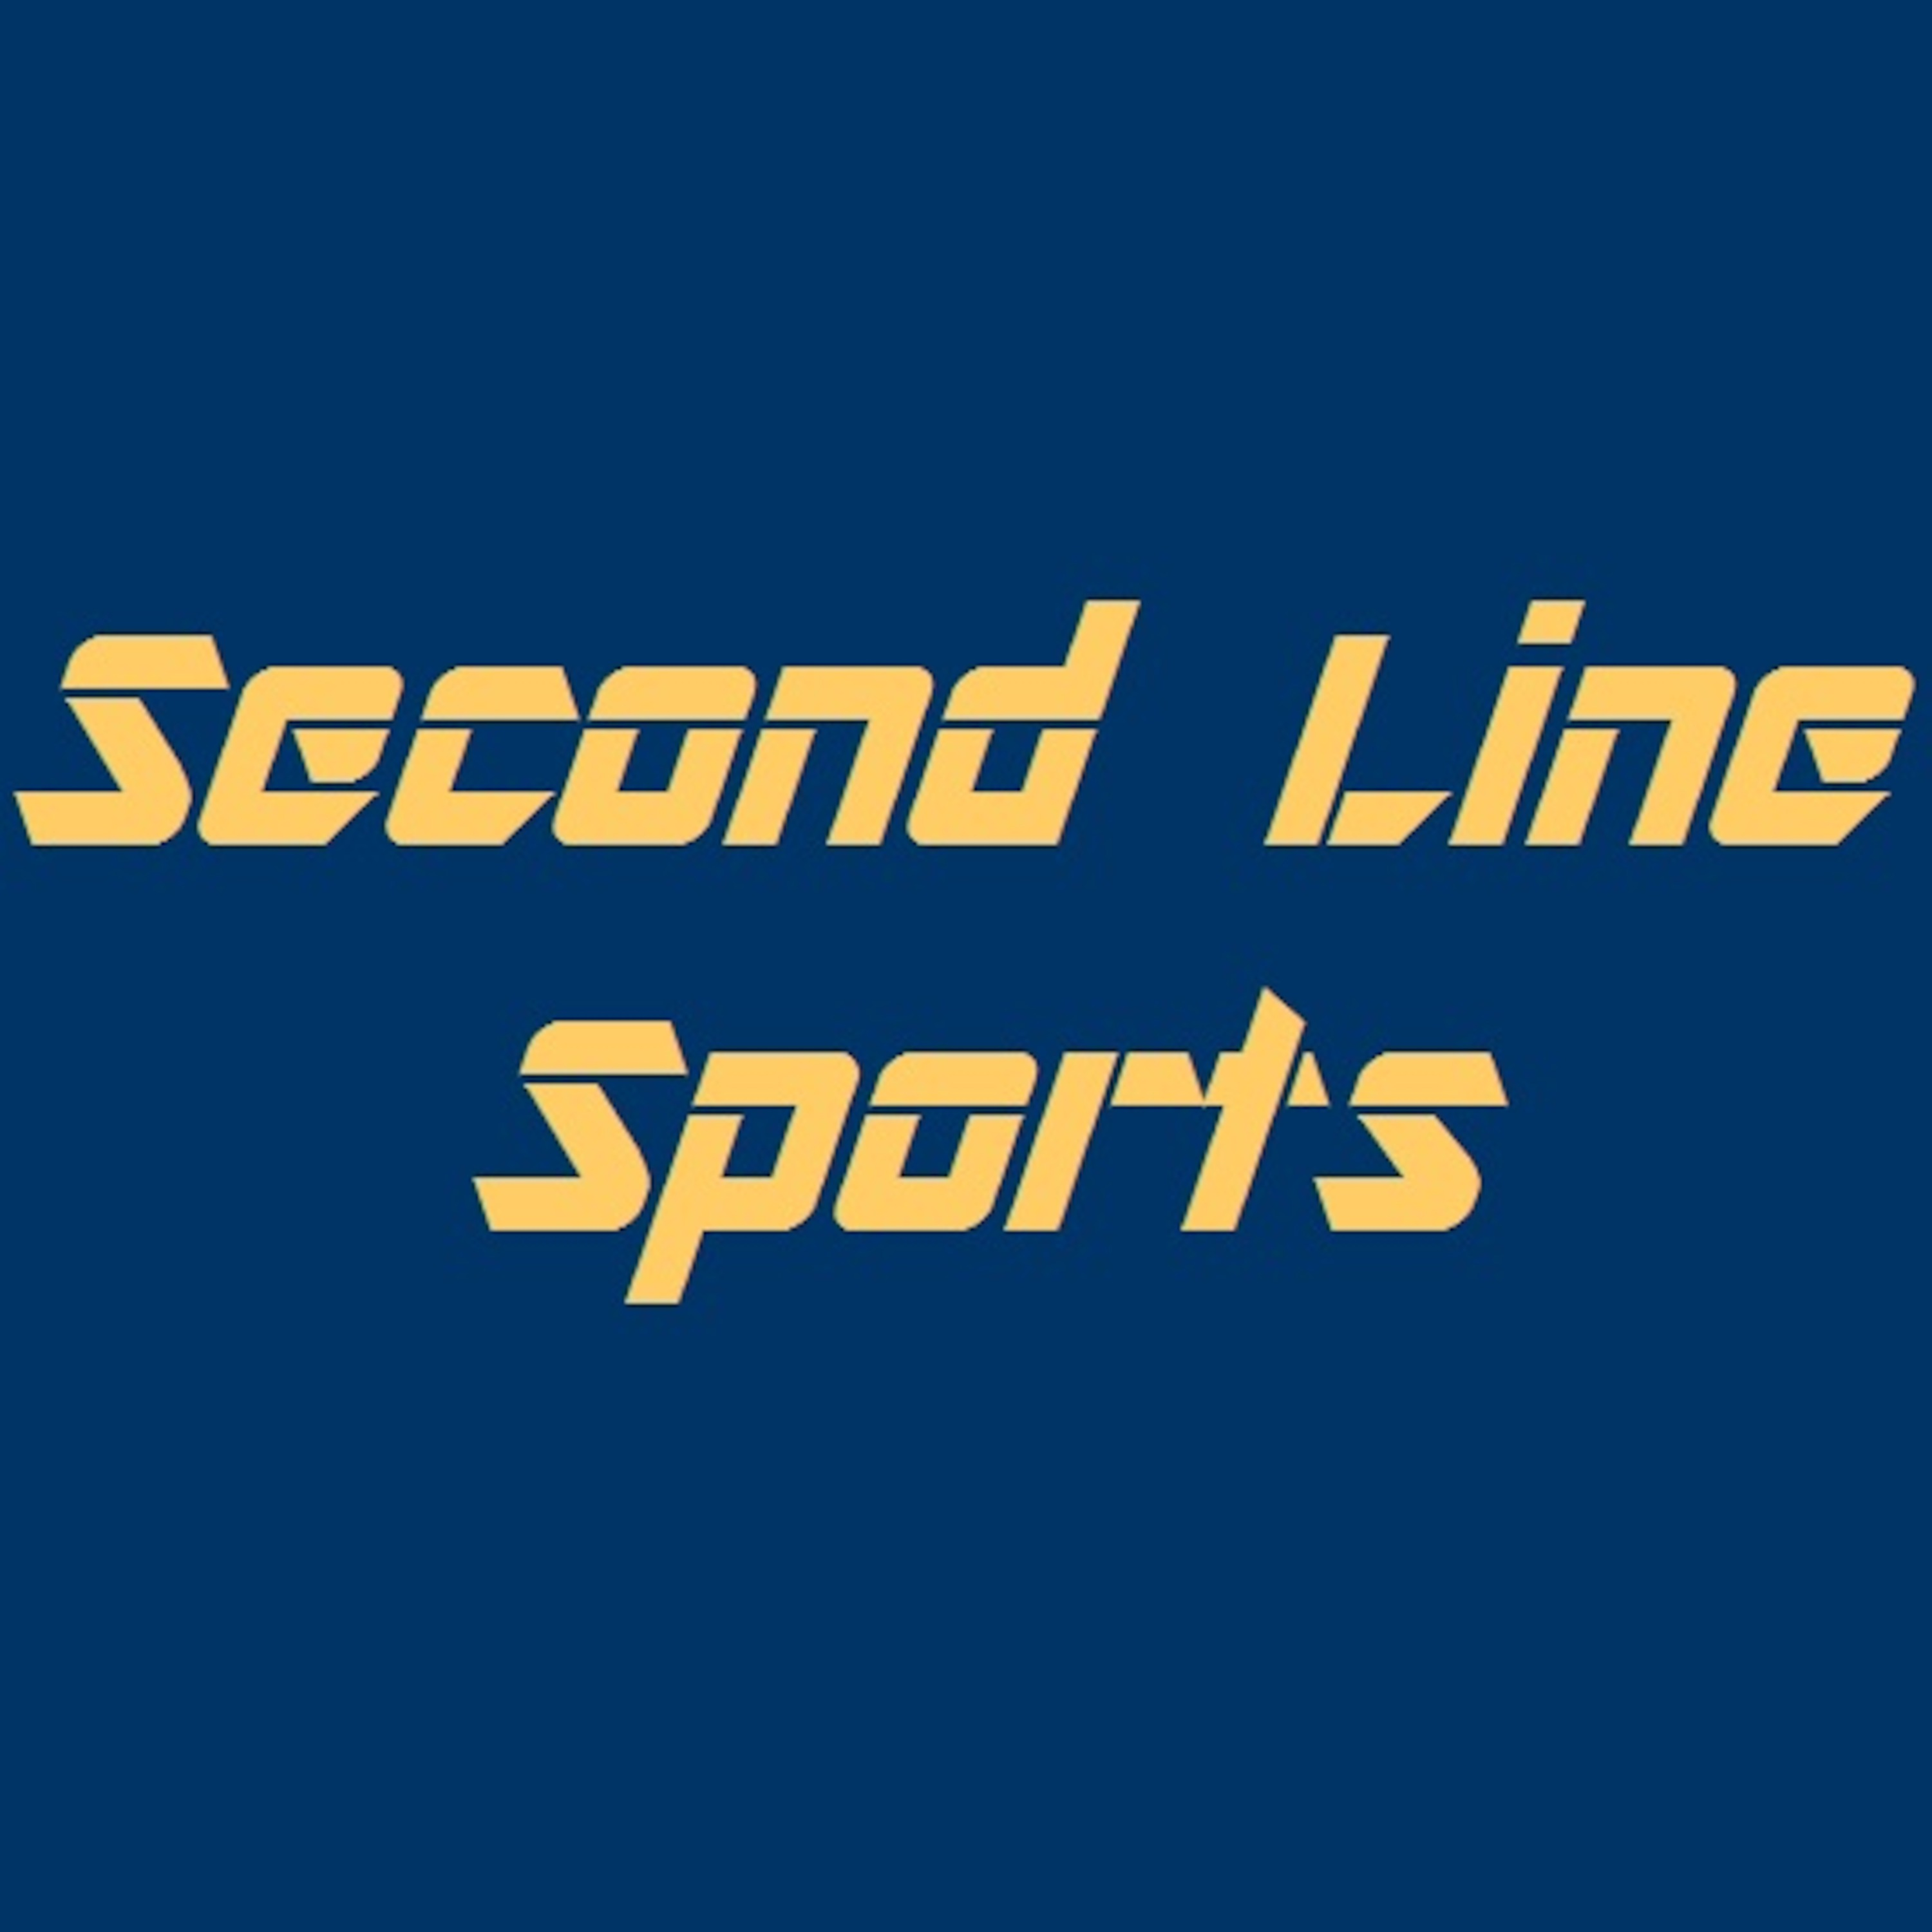 Episode 4 - NFL Preview Recap/Draft Preview, NHL Playoffs, and Sabres Moves